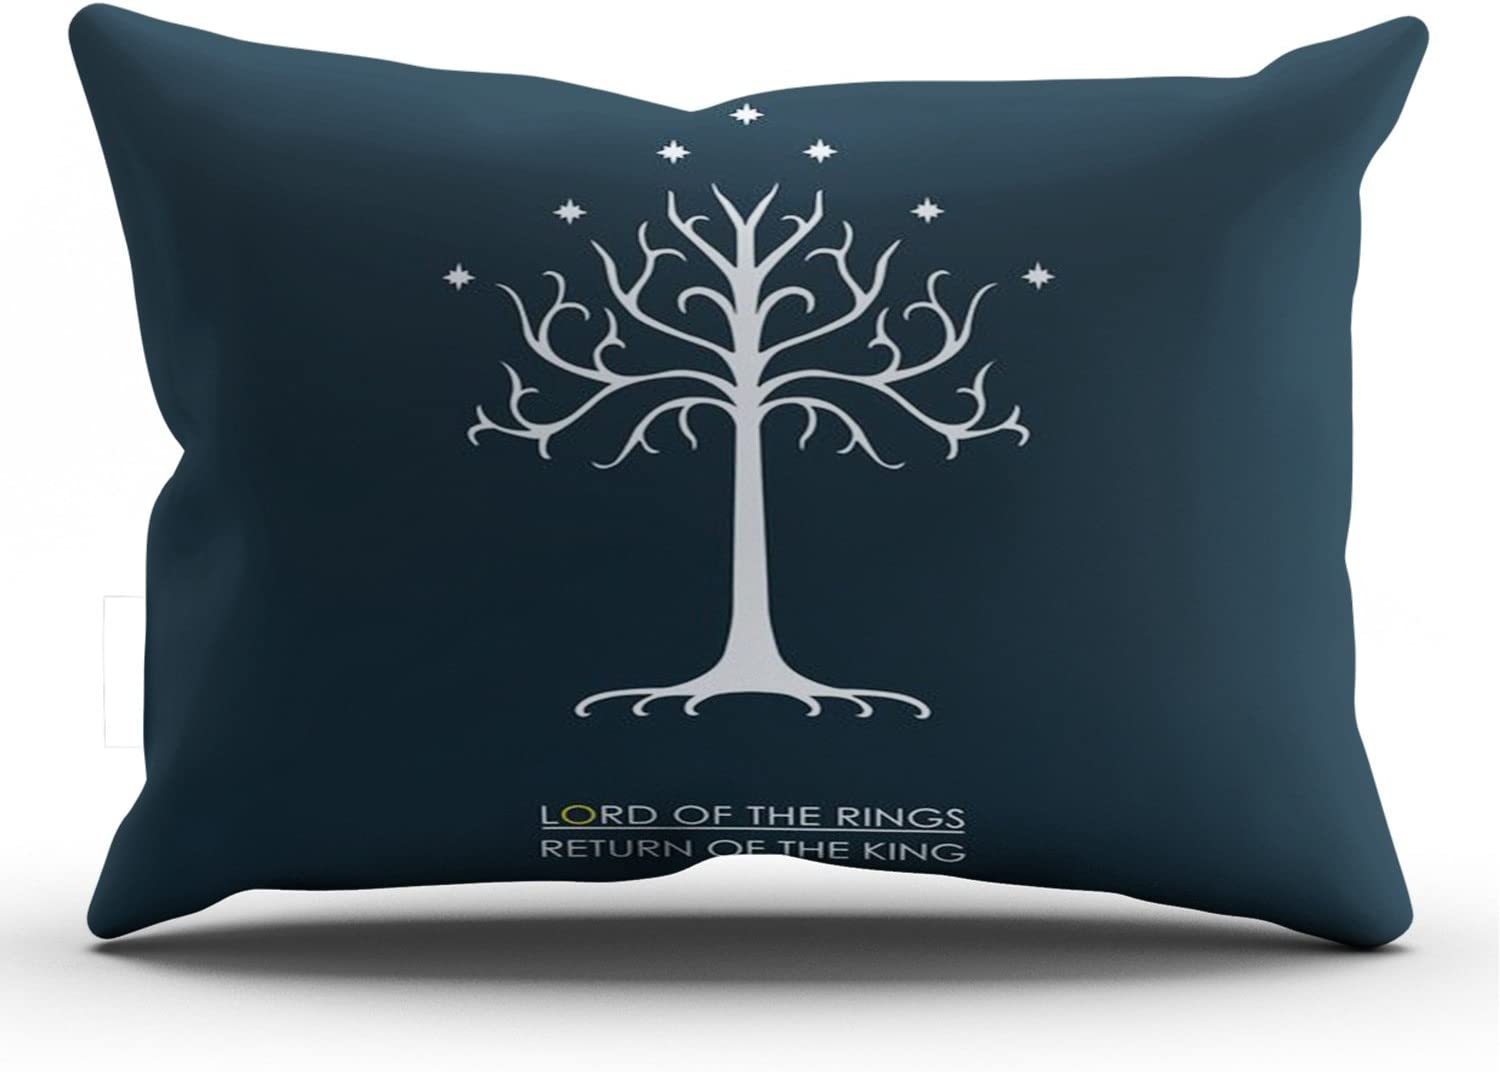 ZeDae Lord of the Rings Personalized Pillowcases Unique Navy Decorative Pillow Case Cover 20x36 Inches Pillowcase One Sided